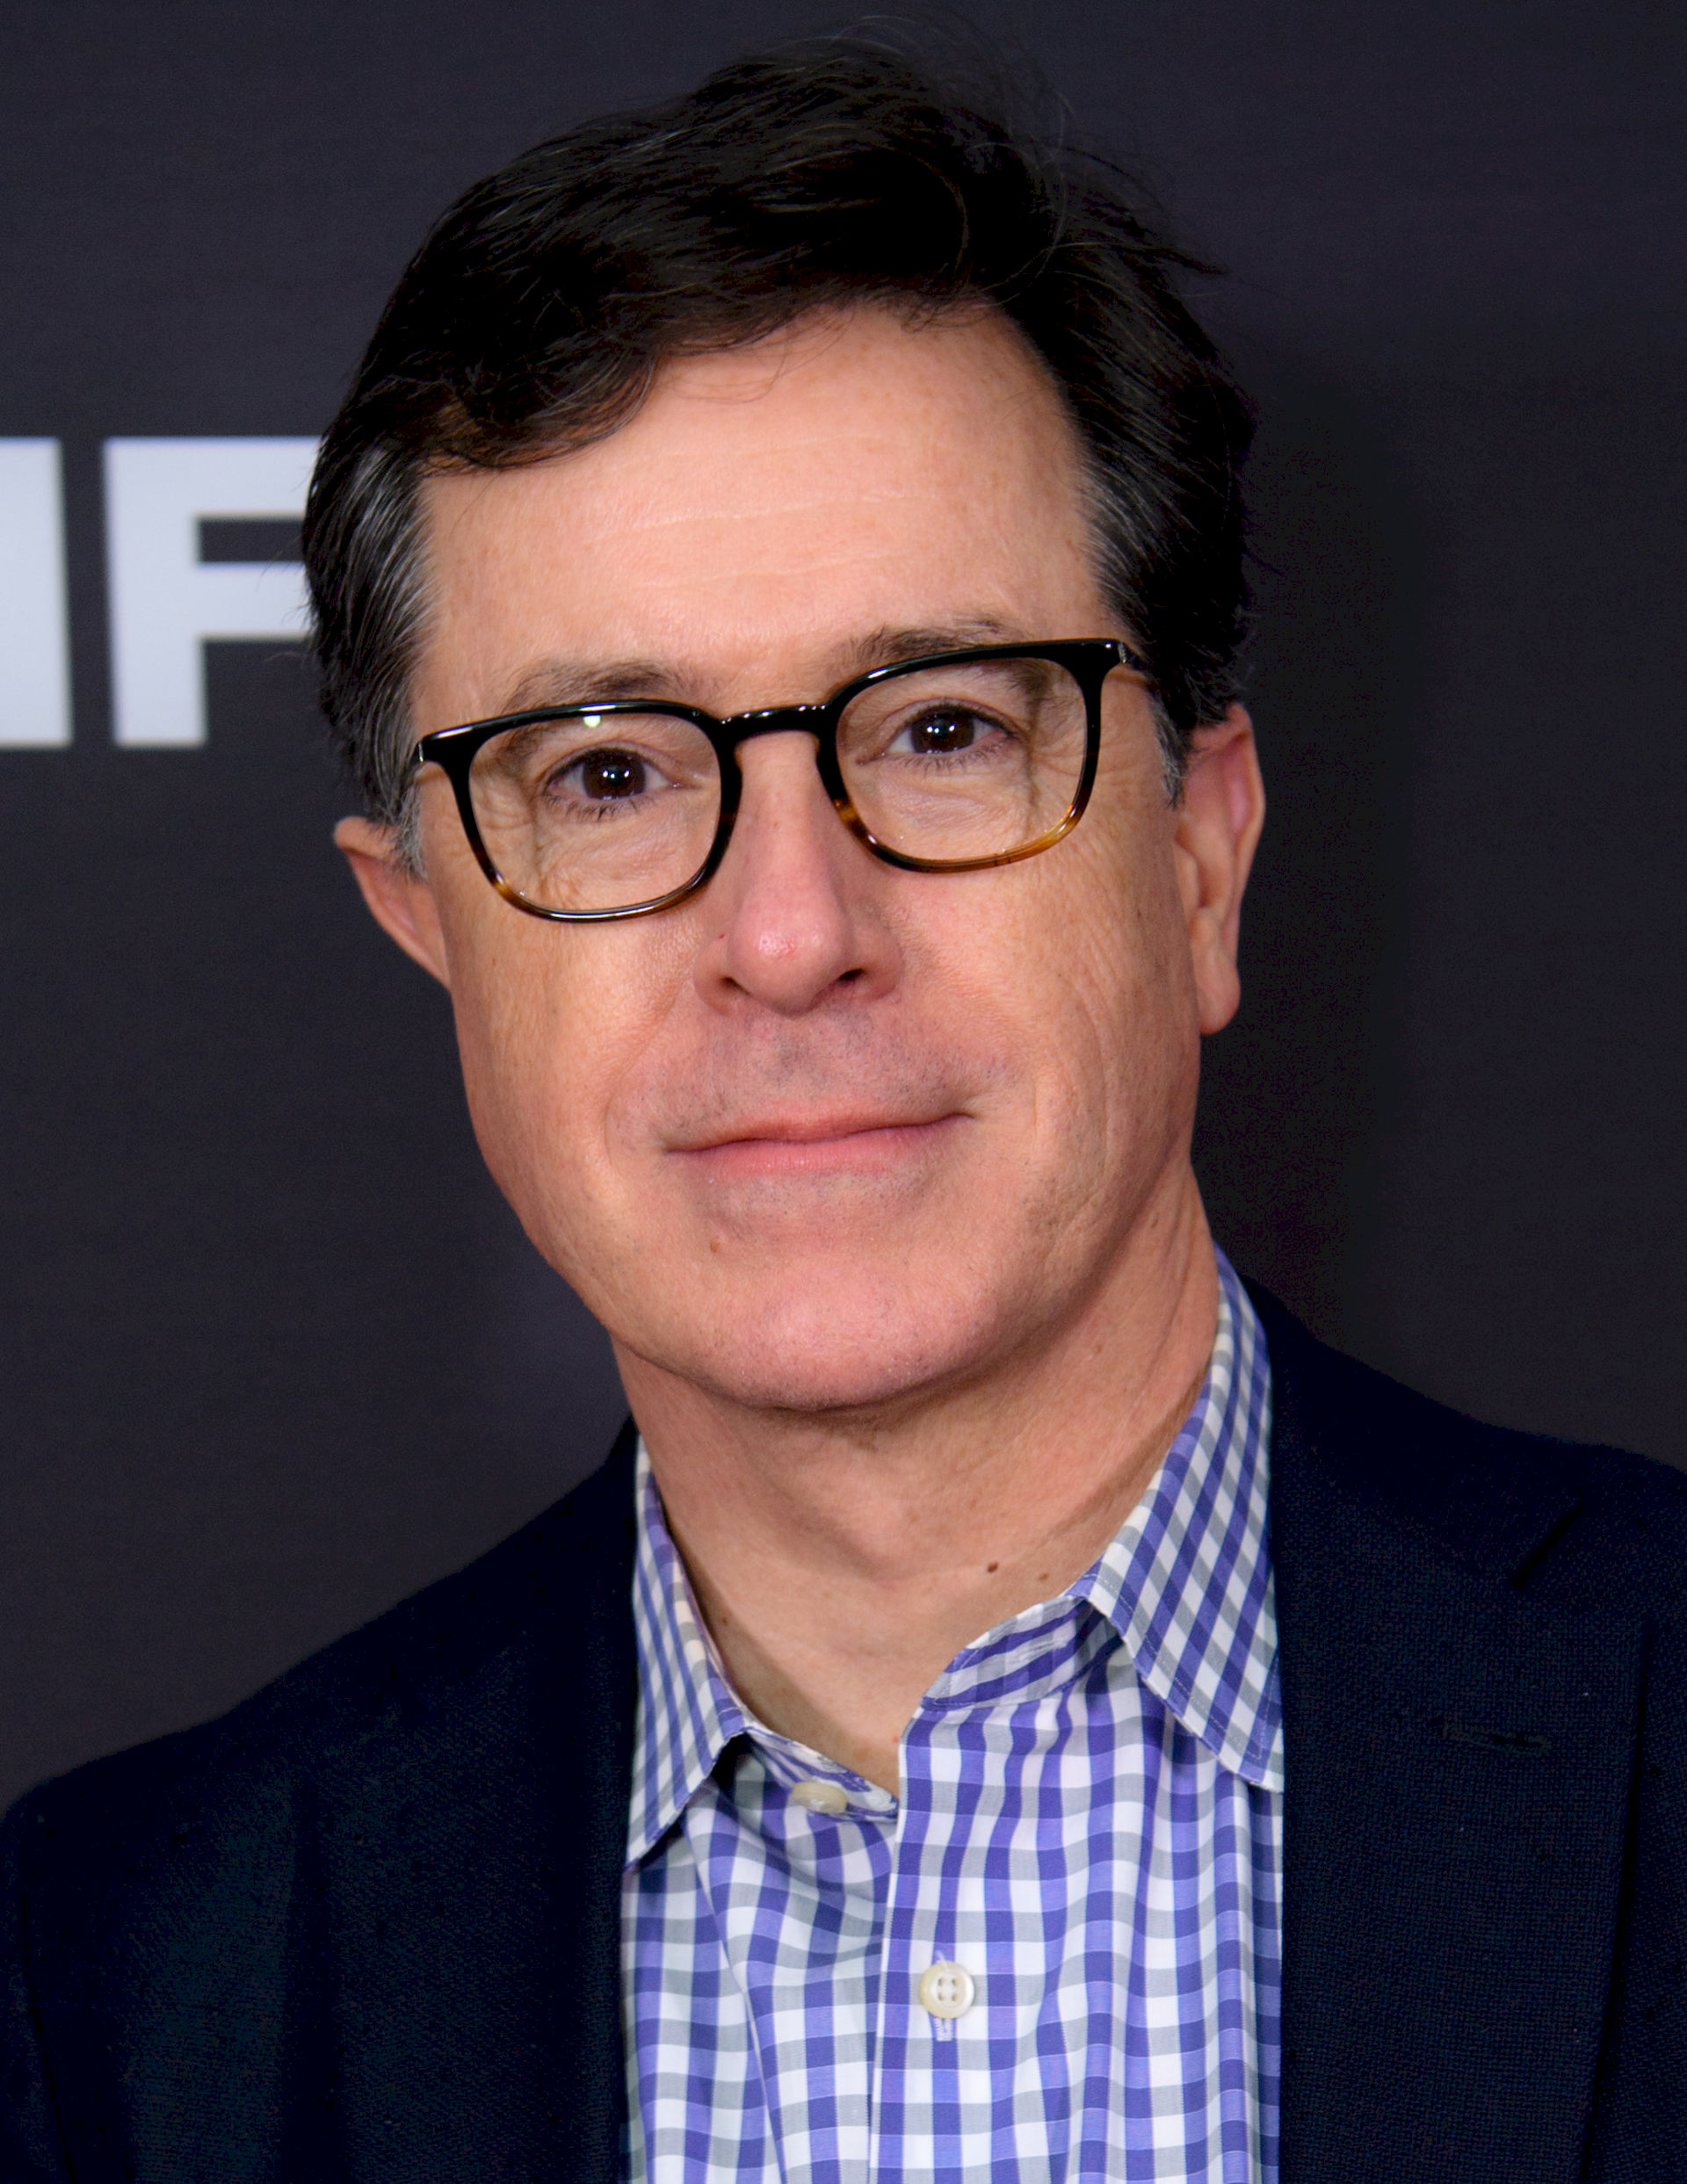 Photo of Stephen Colbert: American political satirist, writer, comedian, television host, and actor